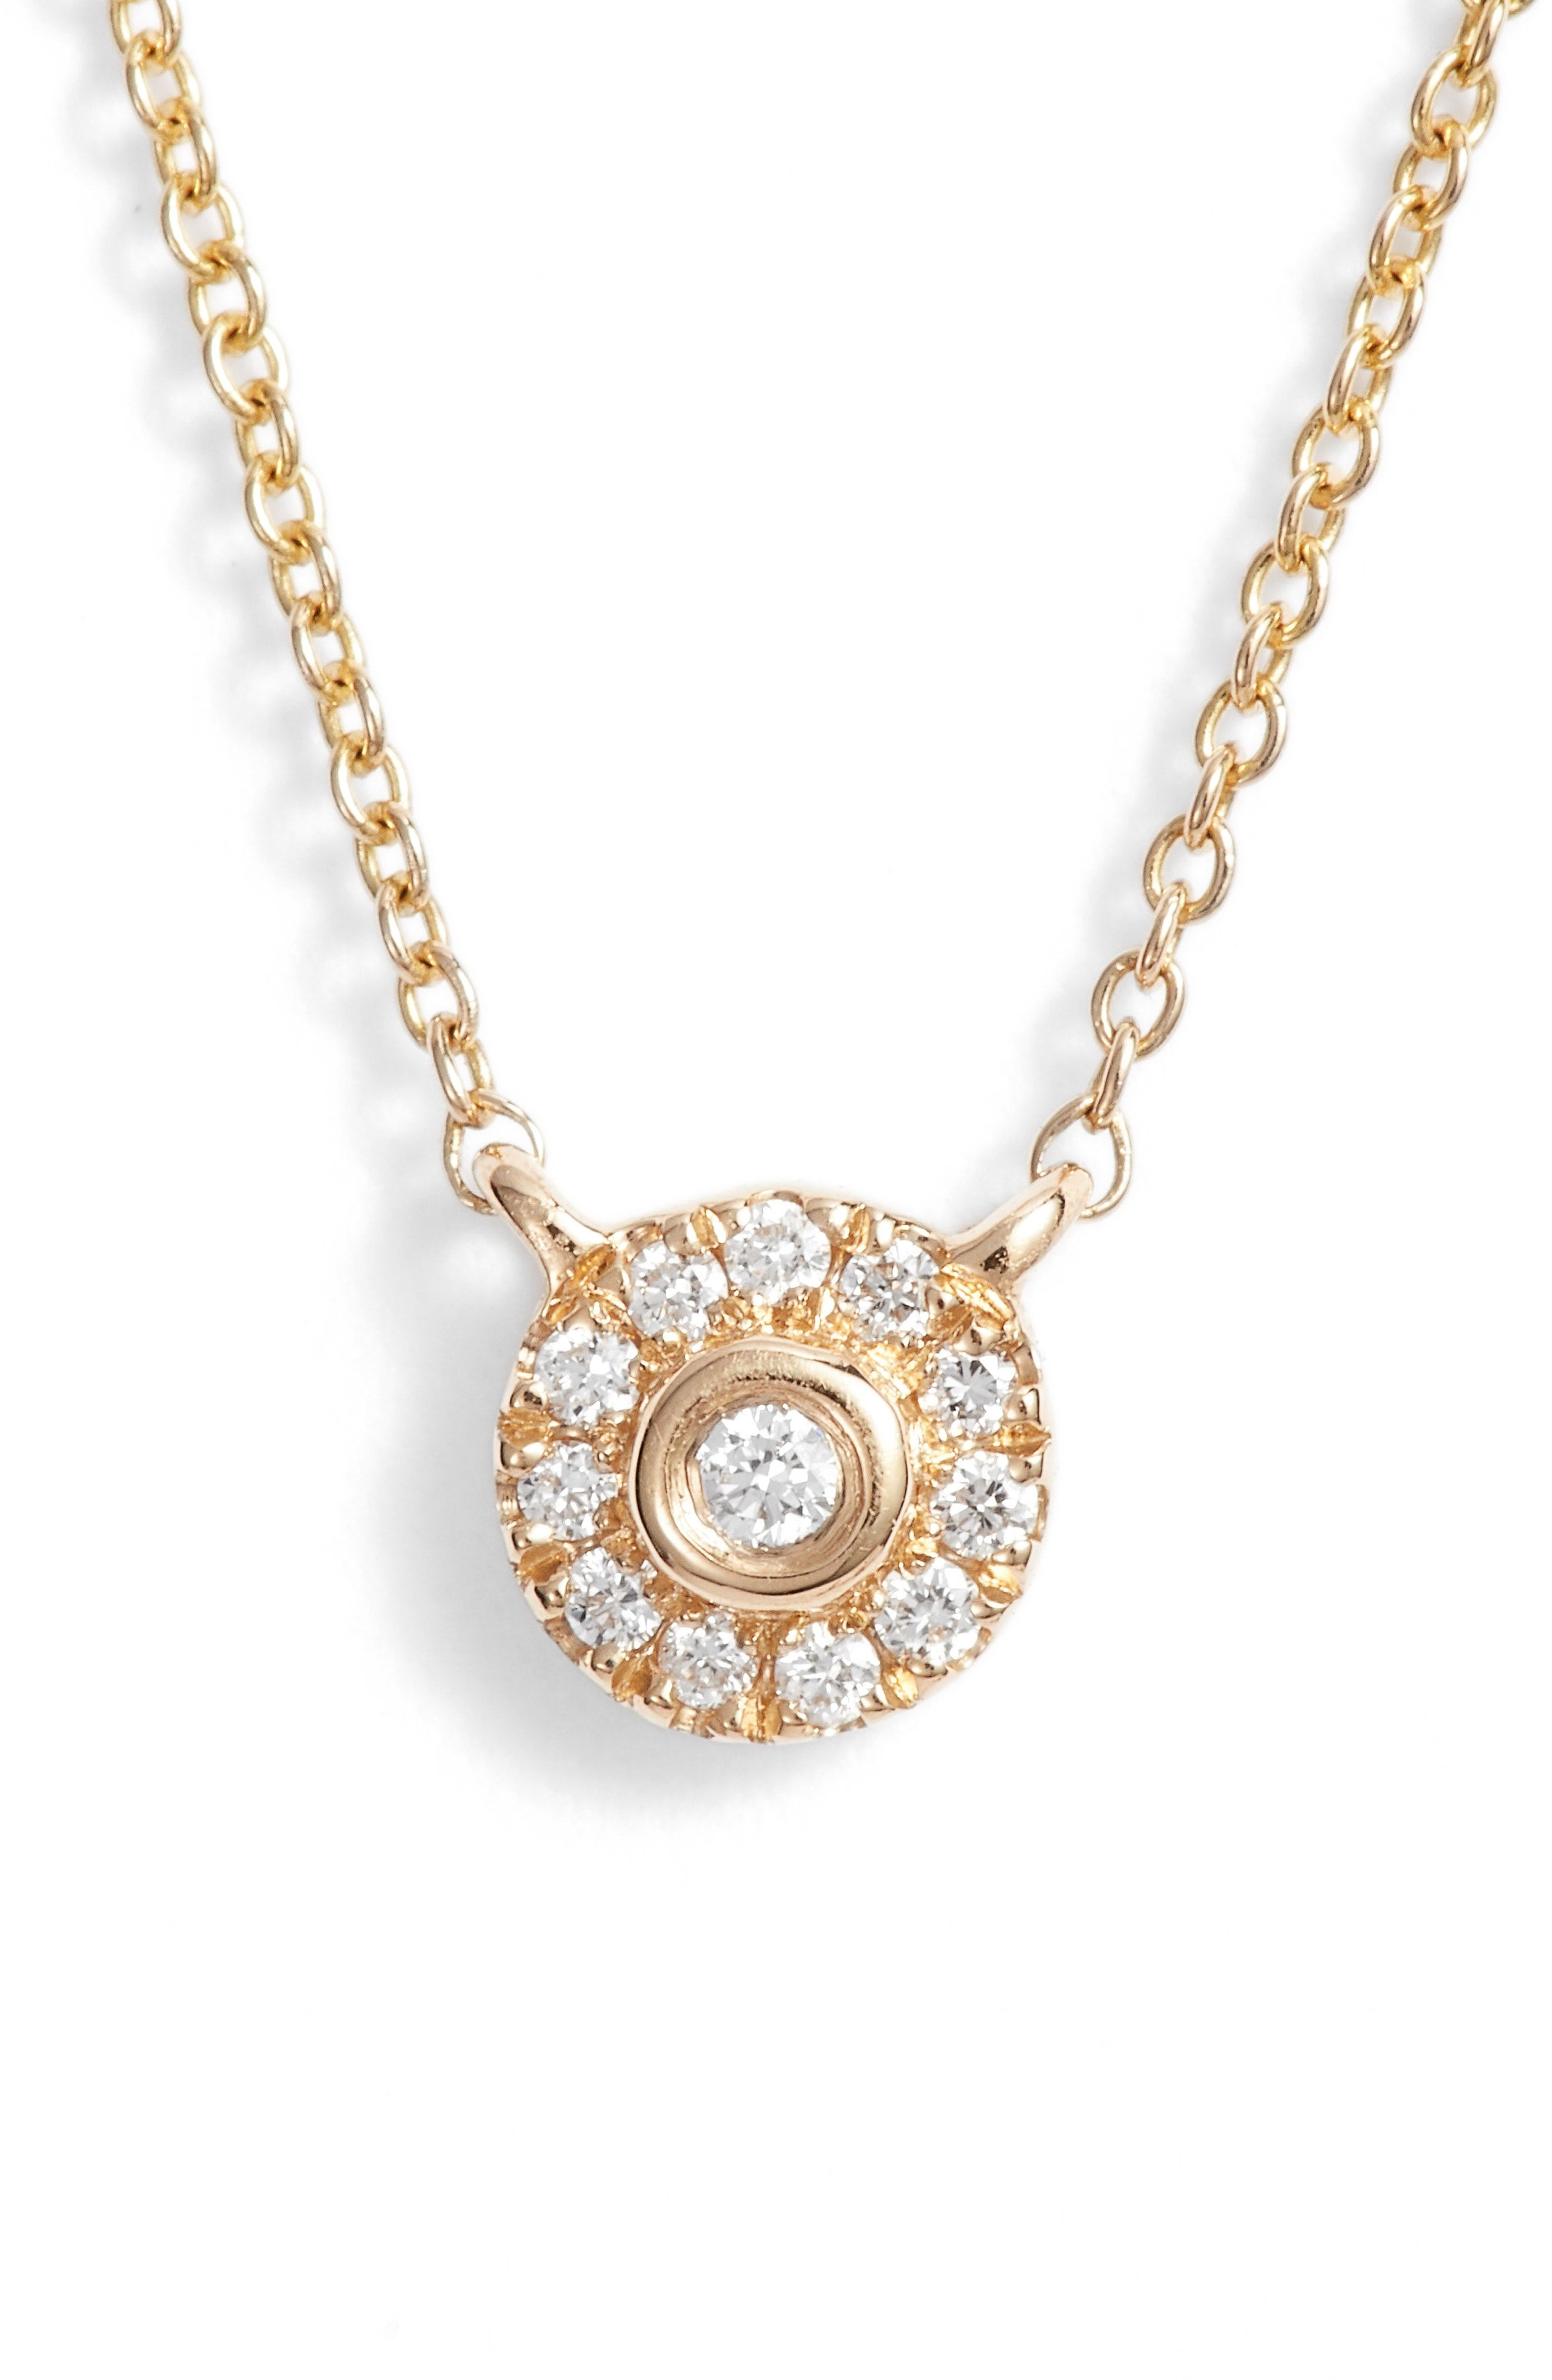 82fd8ddd7f52 WHAT JEWELRY DO YOU WEAR EVERY DAY  - Design Darling